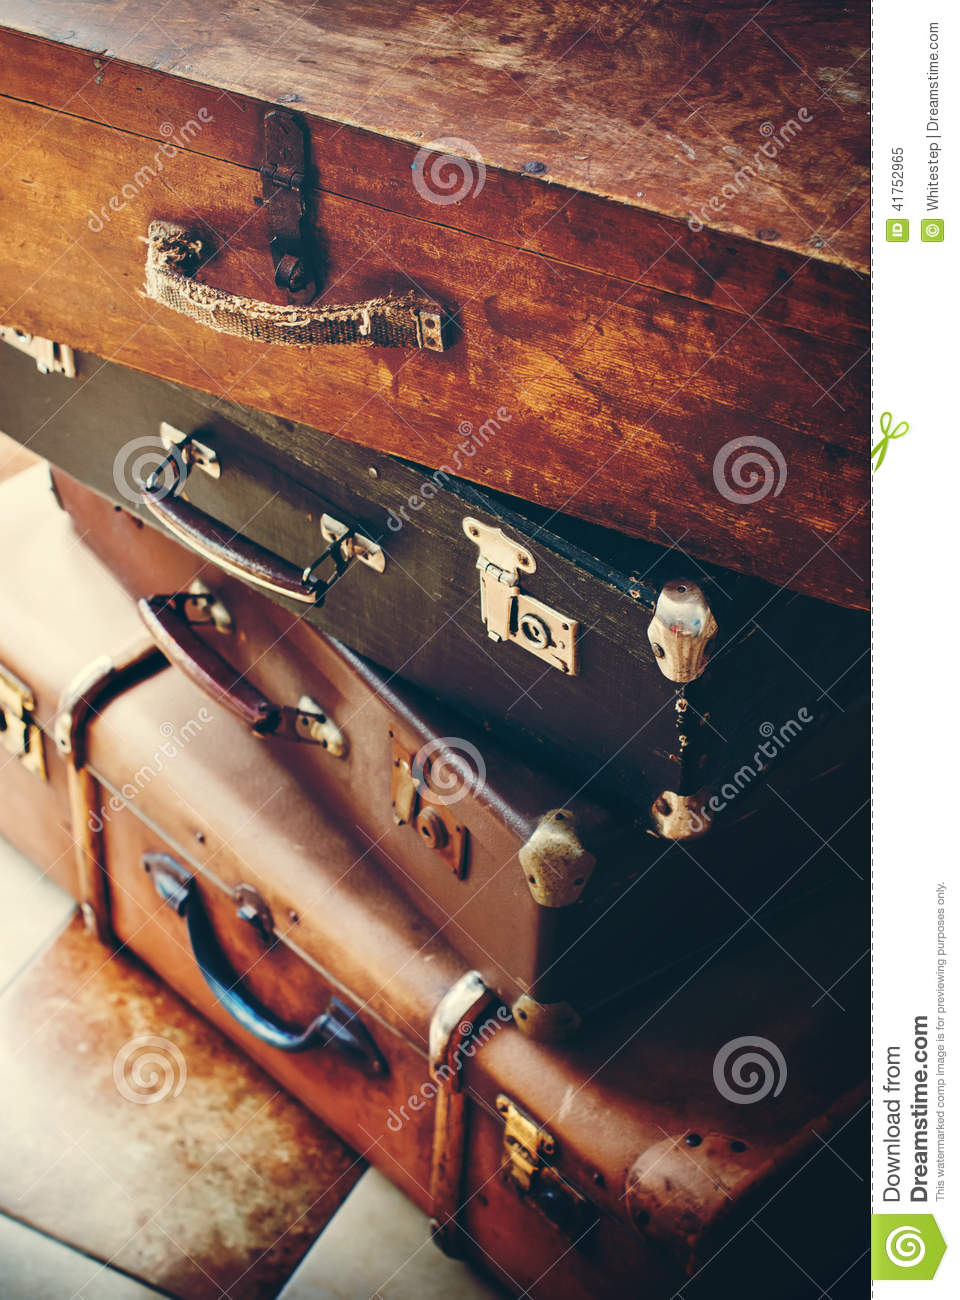 Antique Vintage Trunks and Handles with Locks